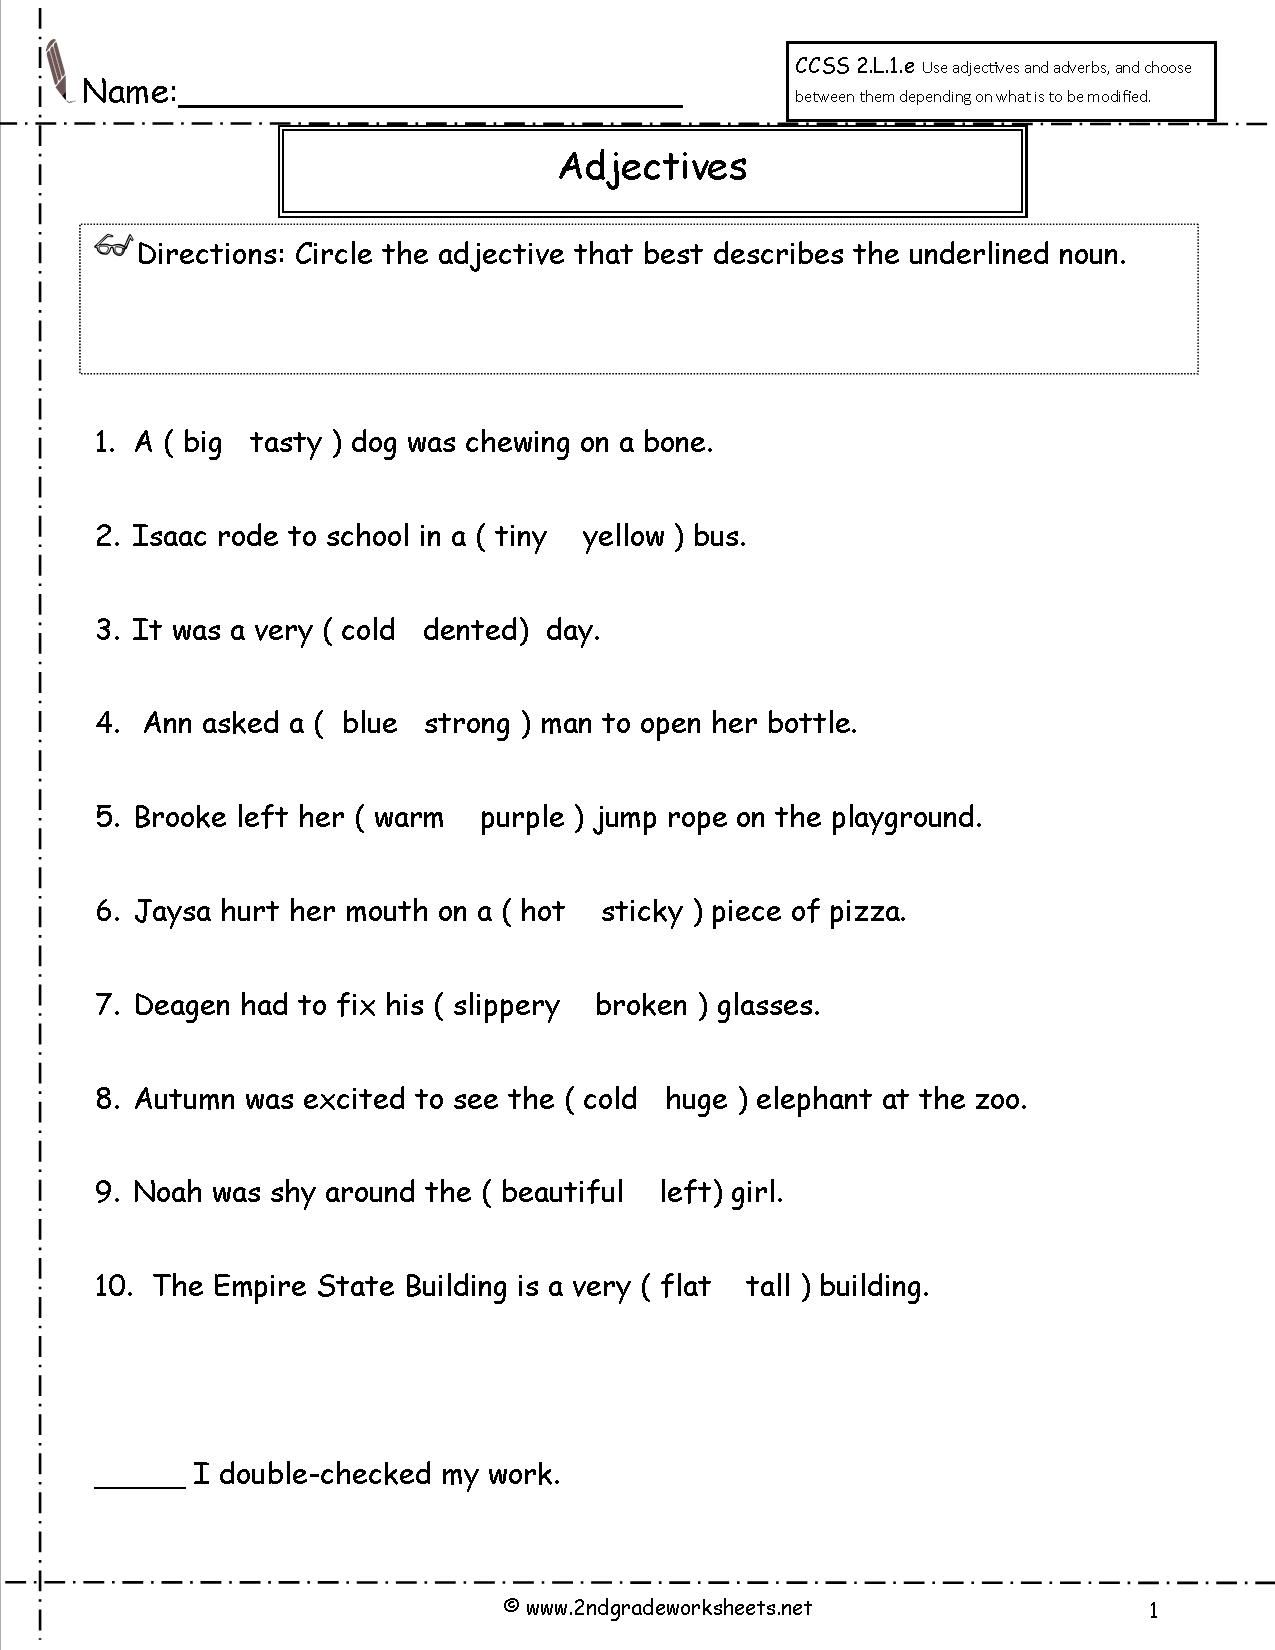 Free Using Adjectives and Adverbs Worksheets Grammar